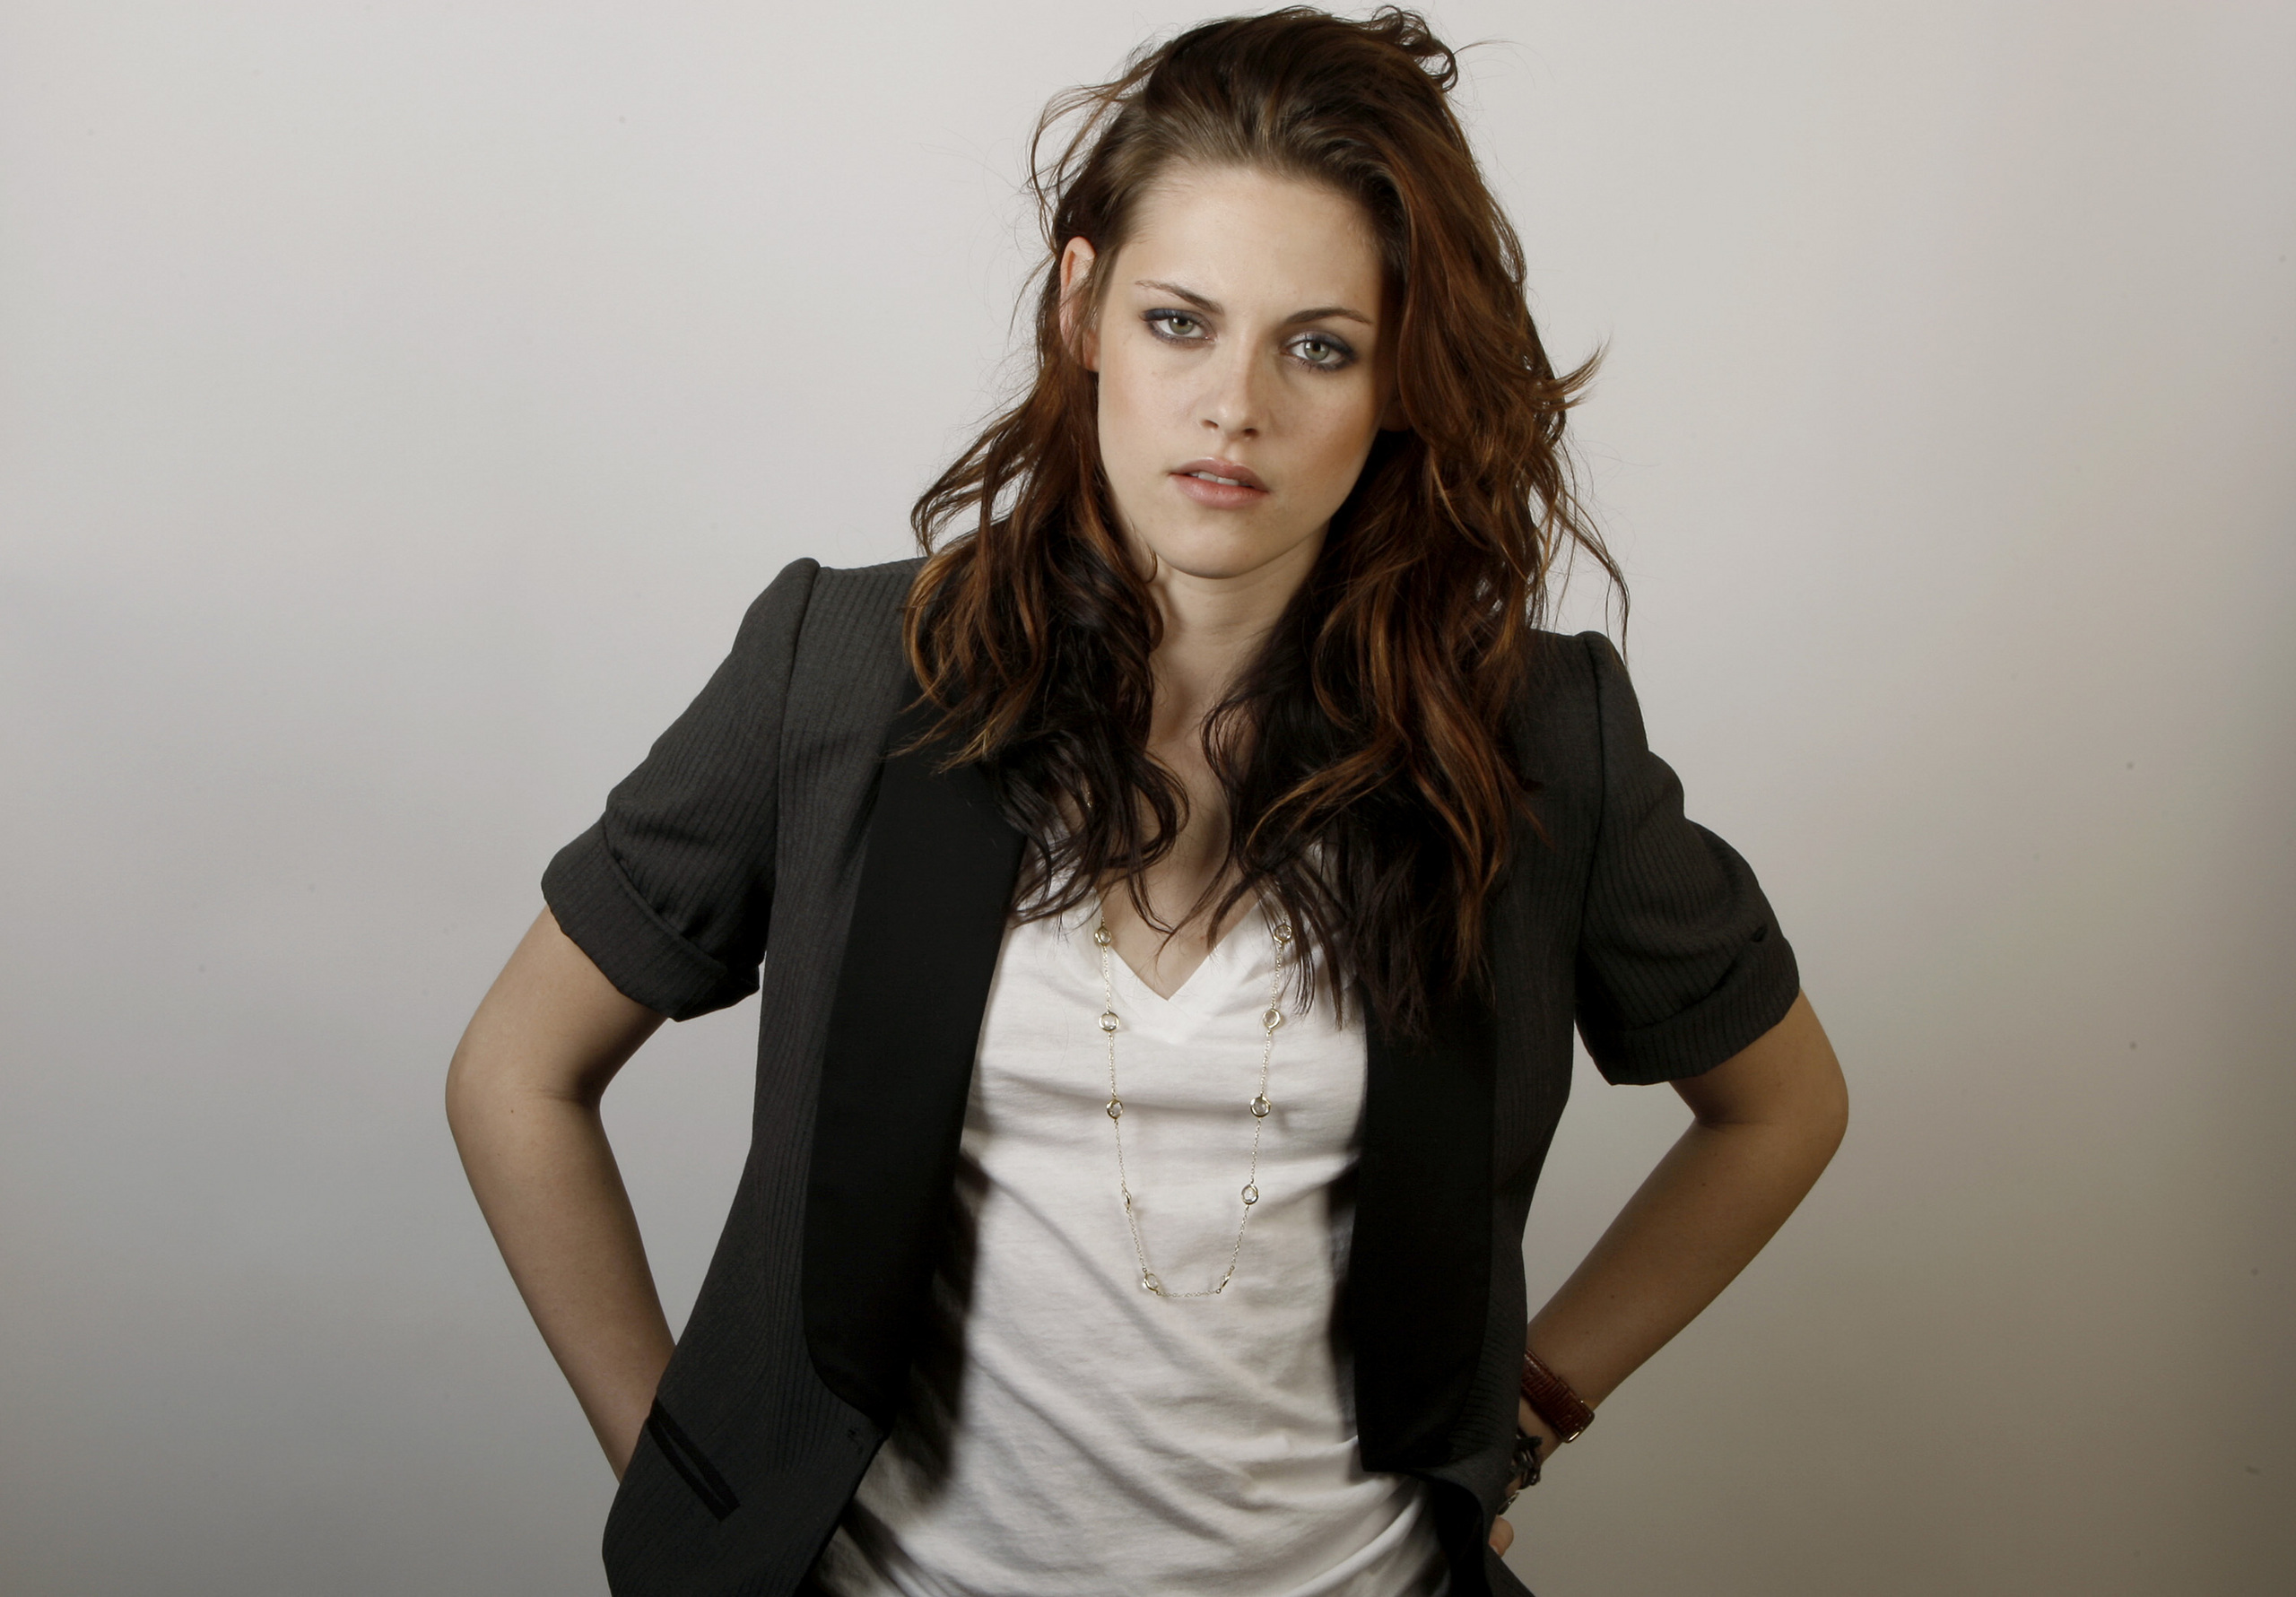 Women Kristen Stewart Actress HD Wallpaper